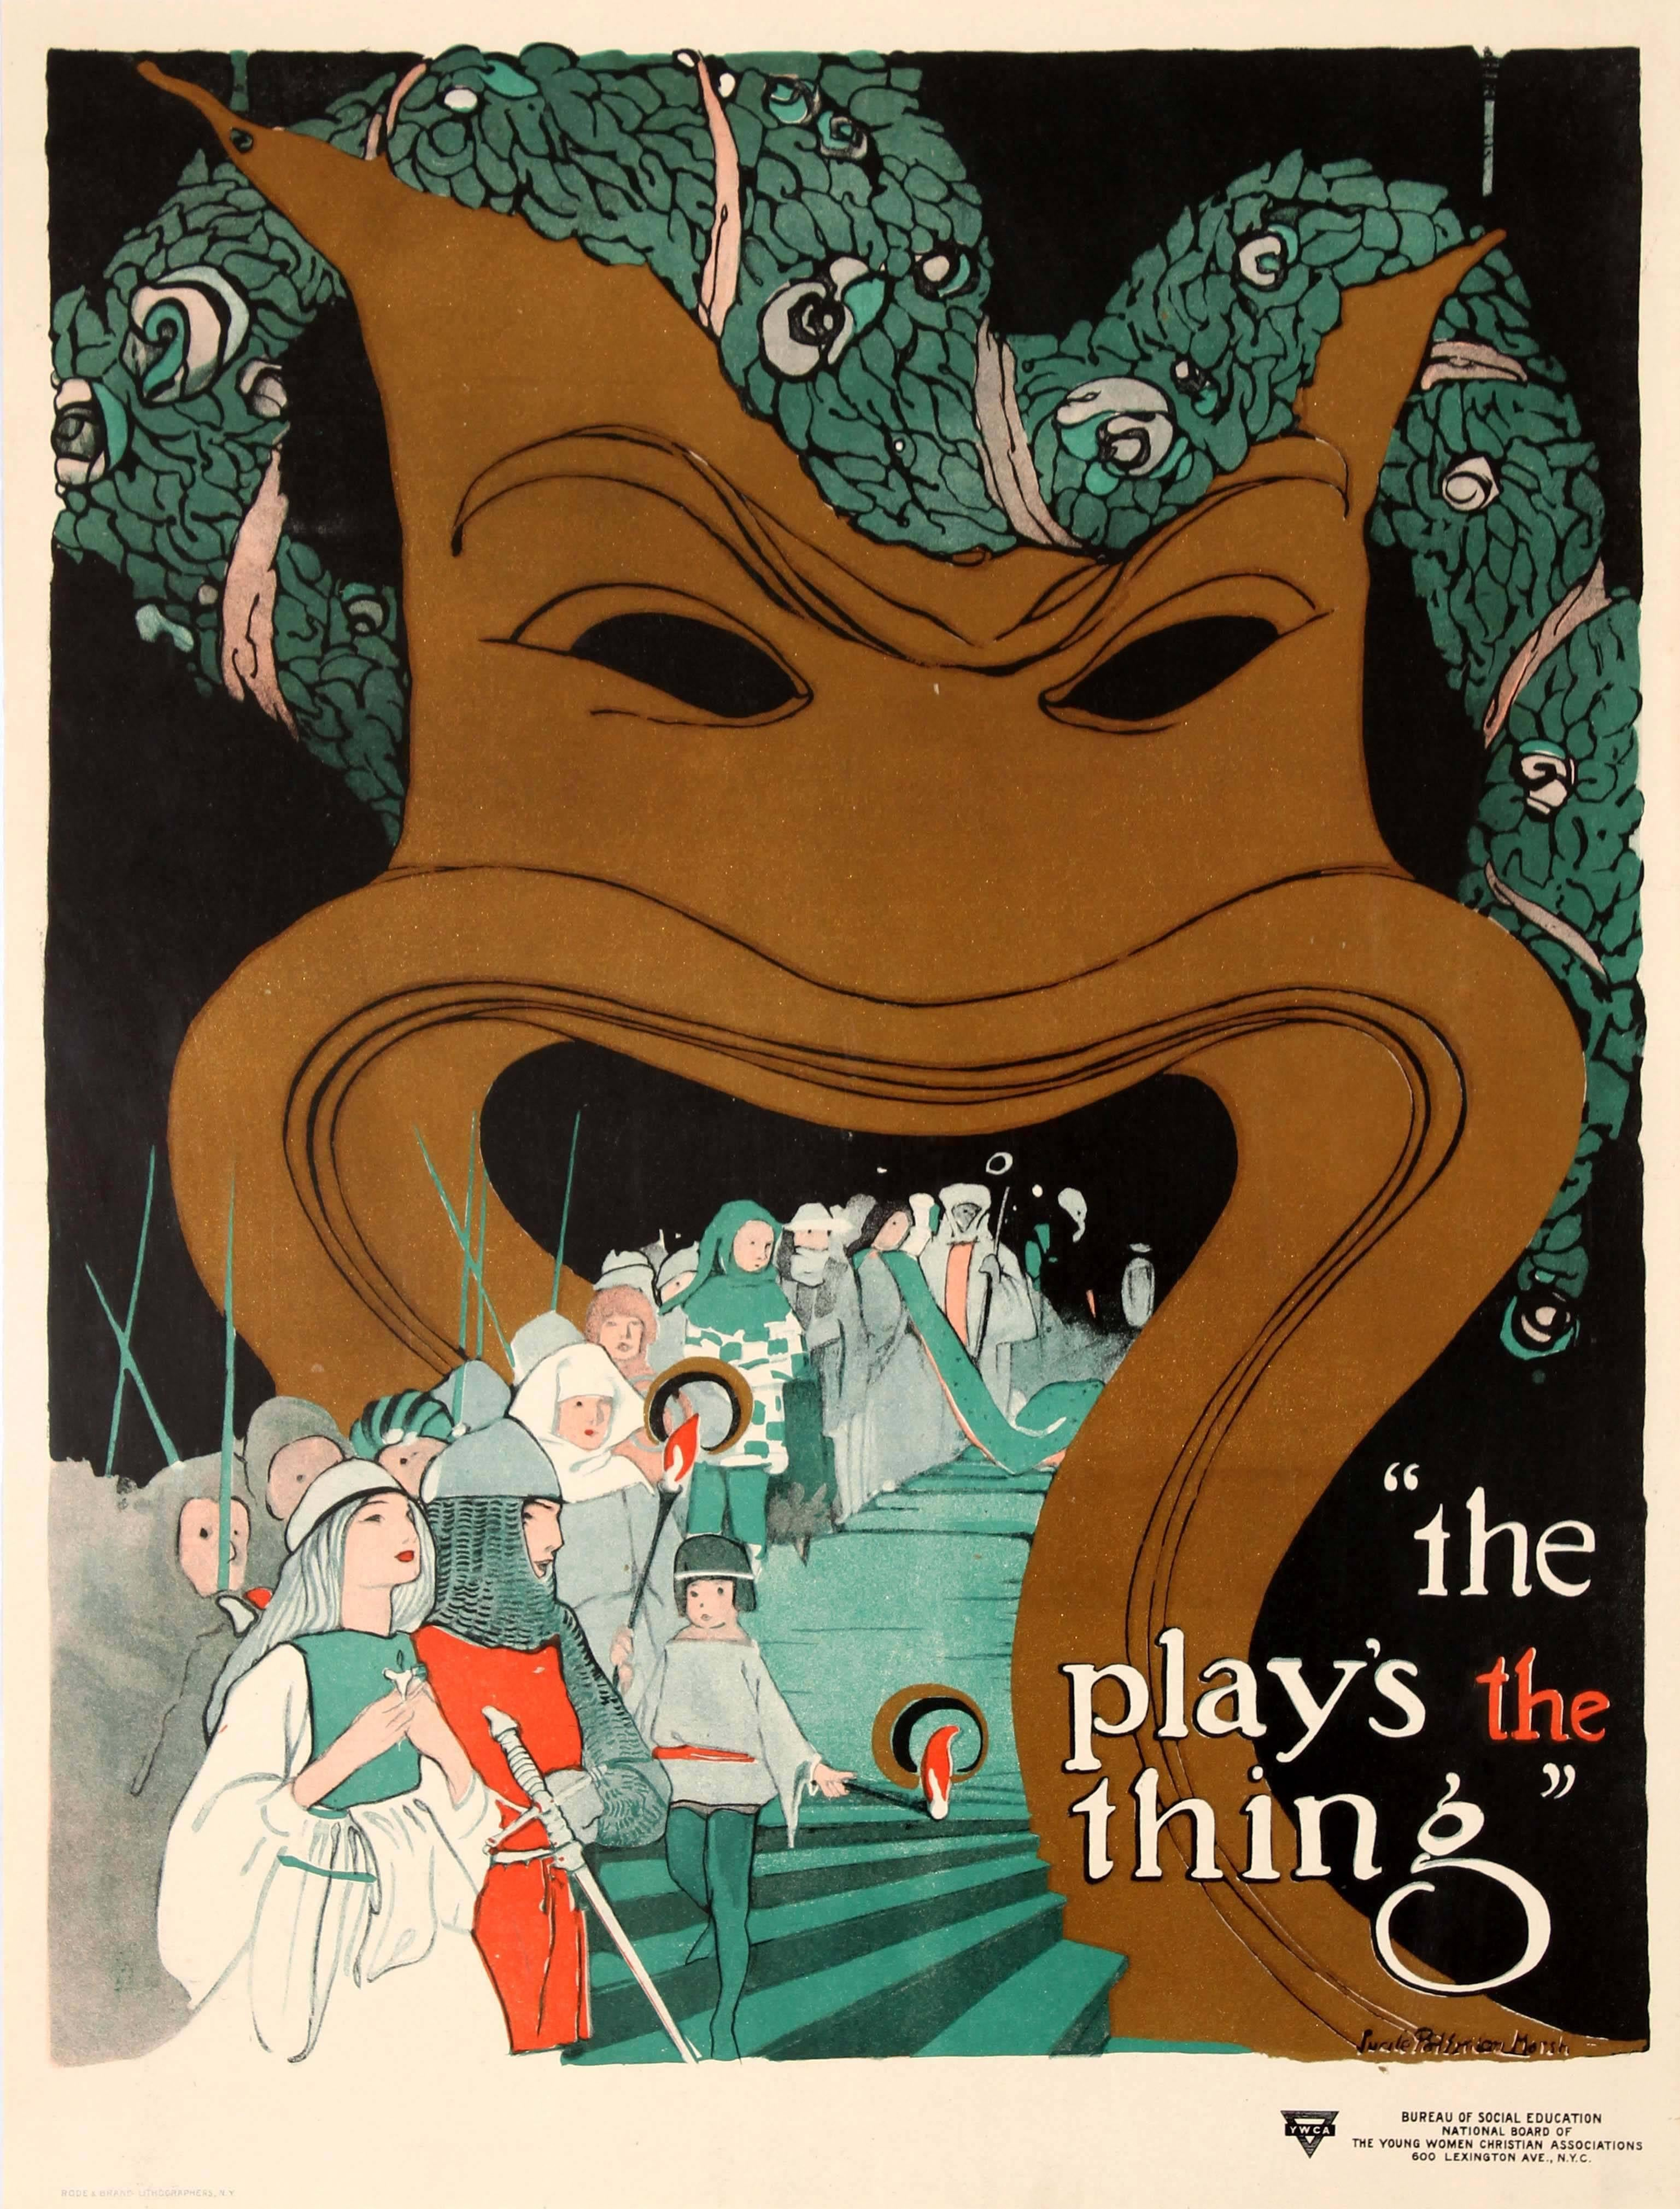 Original Vintage YWCA & Bureau Of Social Education Poster - The Play's The Thing